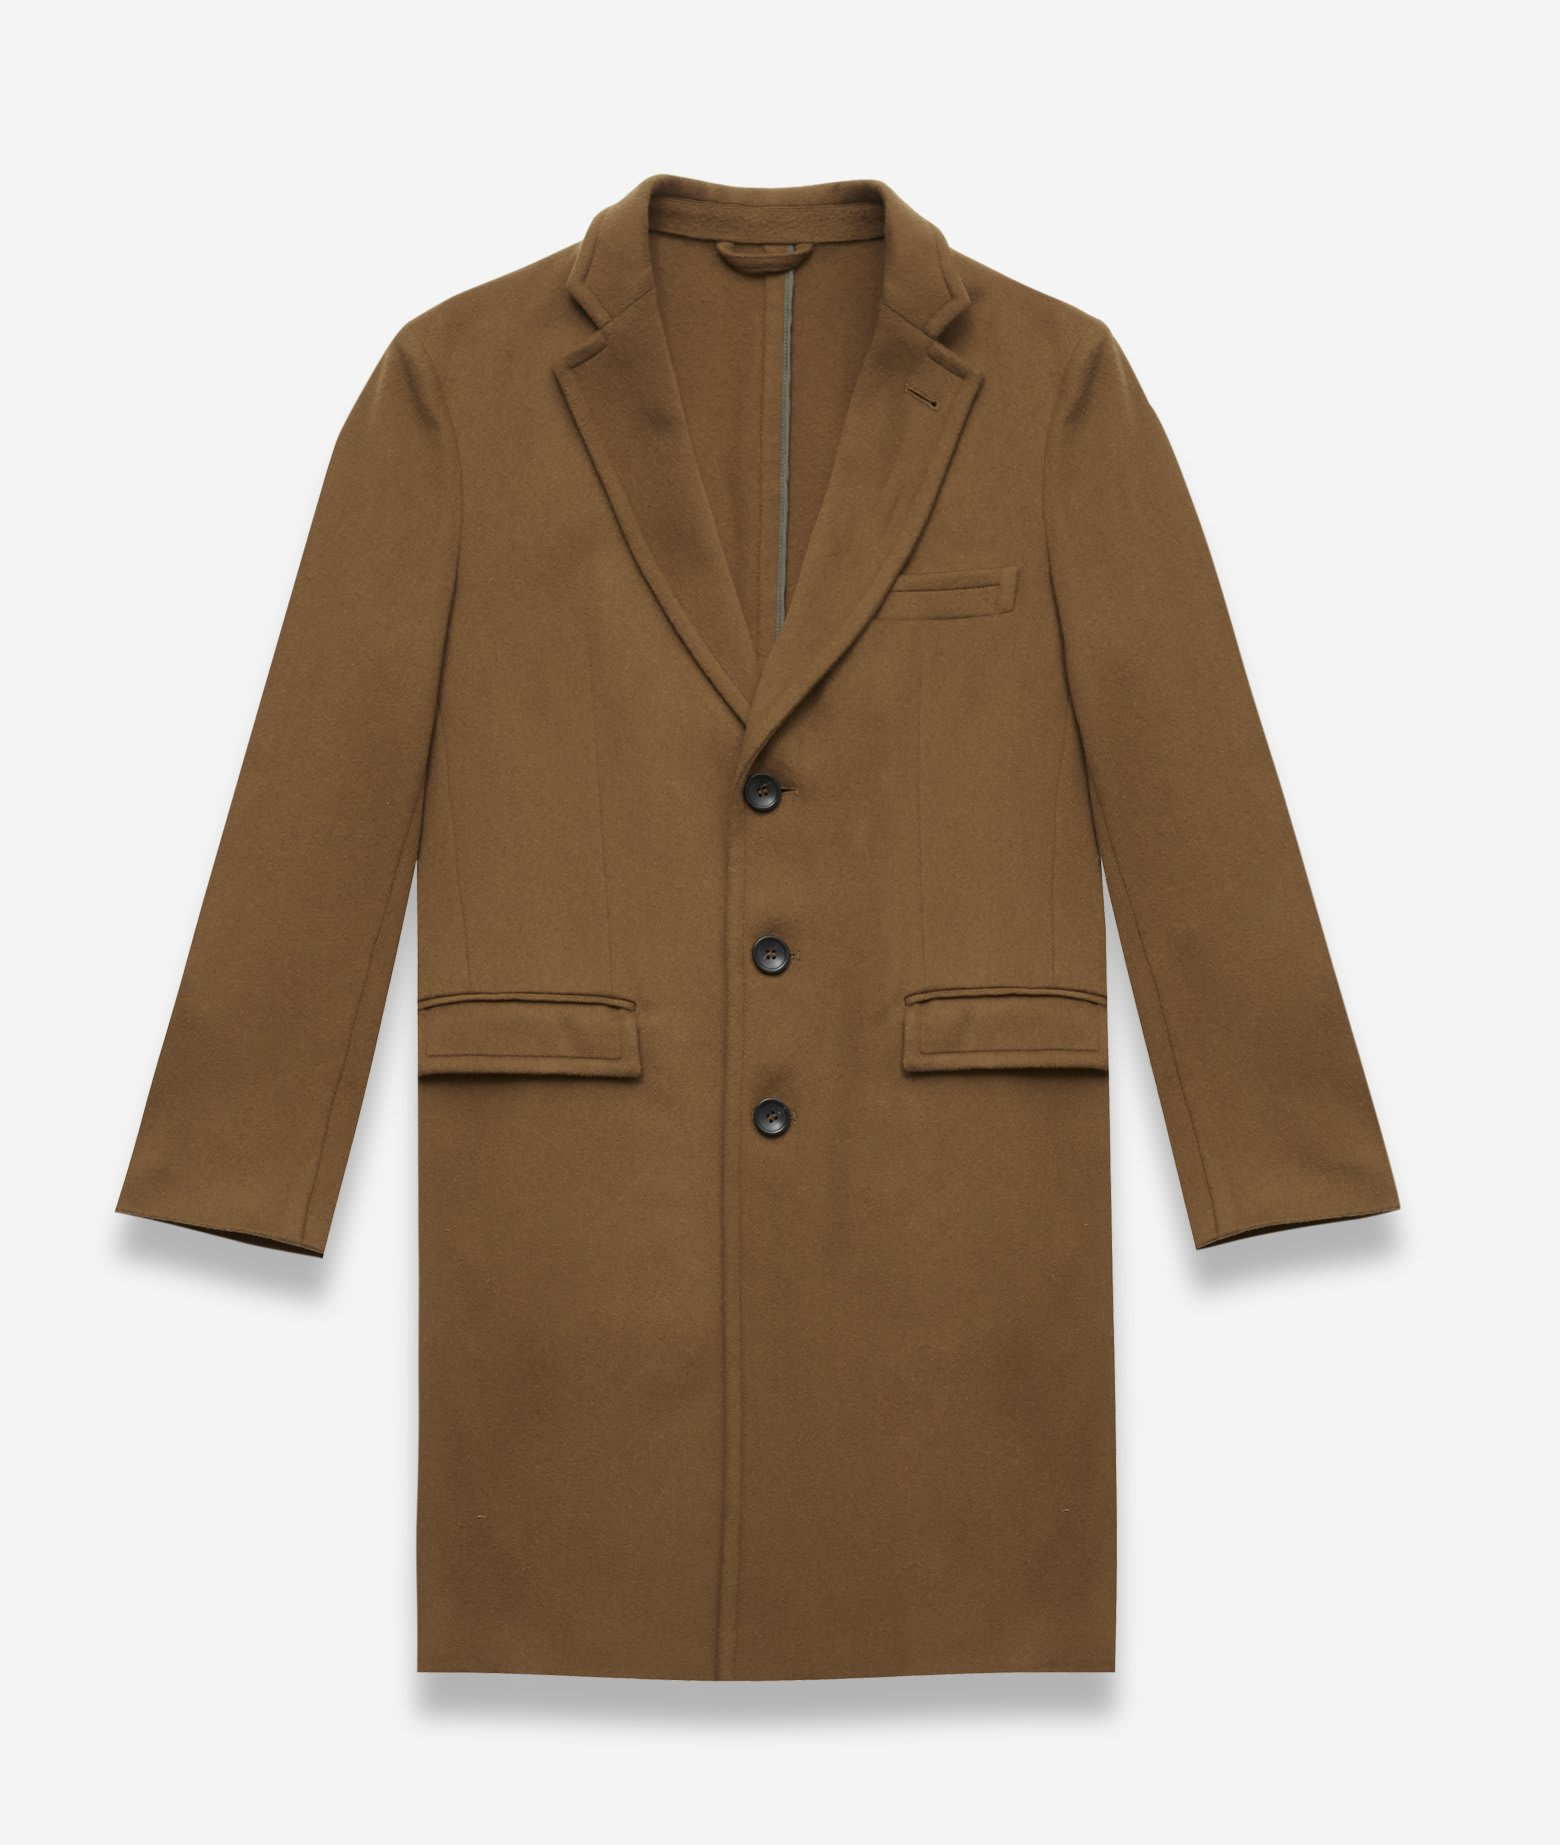 Unlined Sport Coat annie Hall